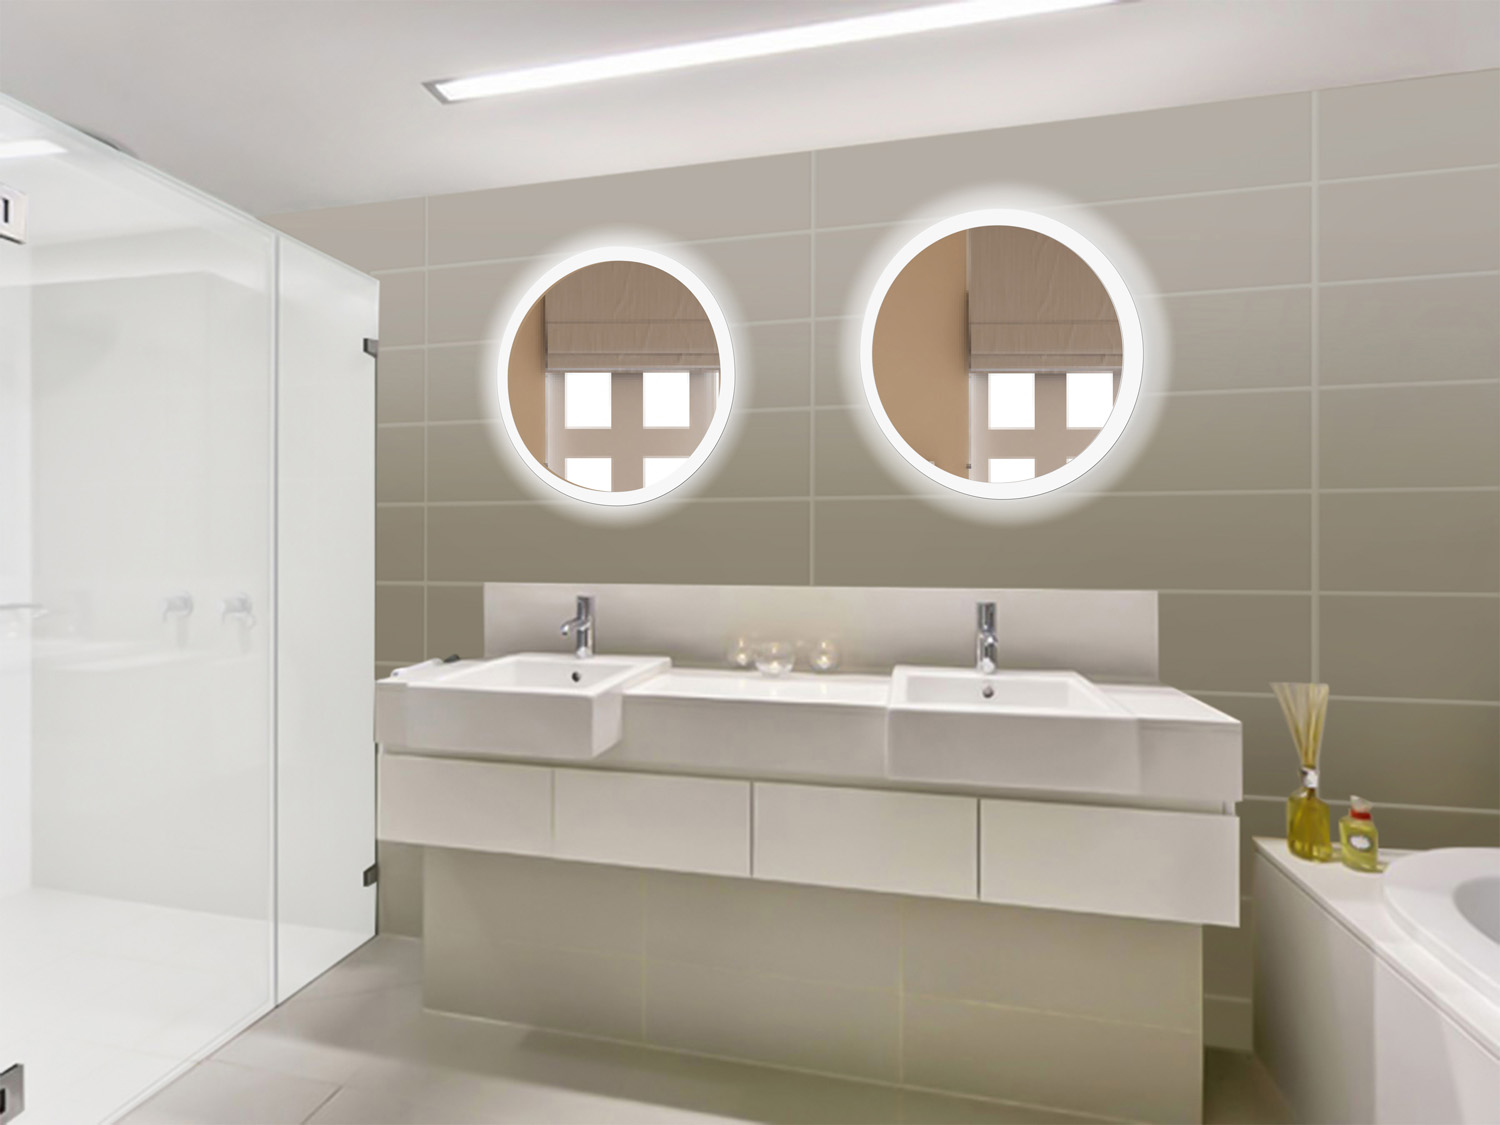 Lighted Mirror Bathroom Buy Bathroom Led Lighted Mirrors Backlit Mirrors Decoraport Usa Led: LED 27″ Round Bathroom Mirror Lighted With Dimmer